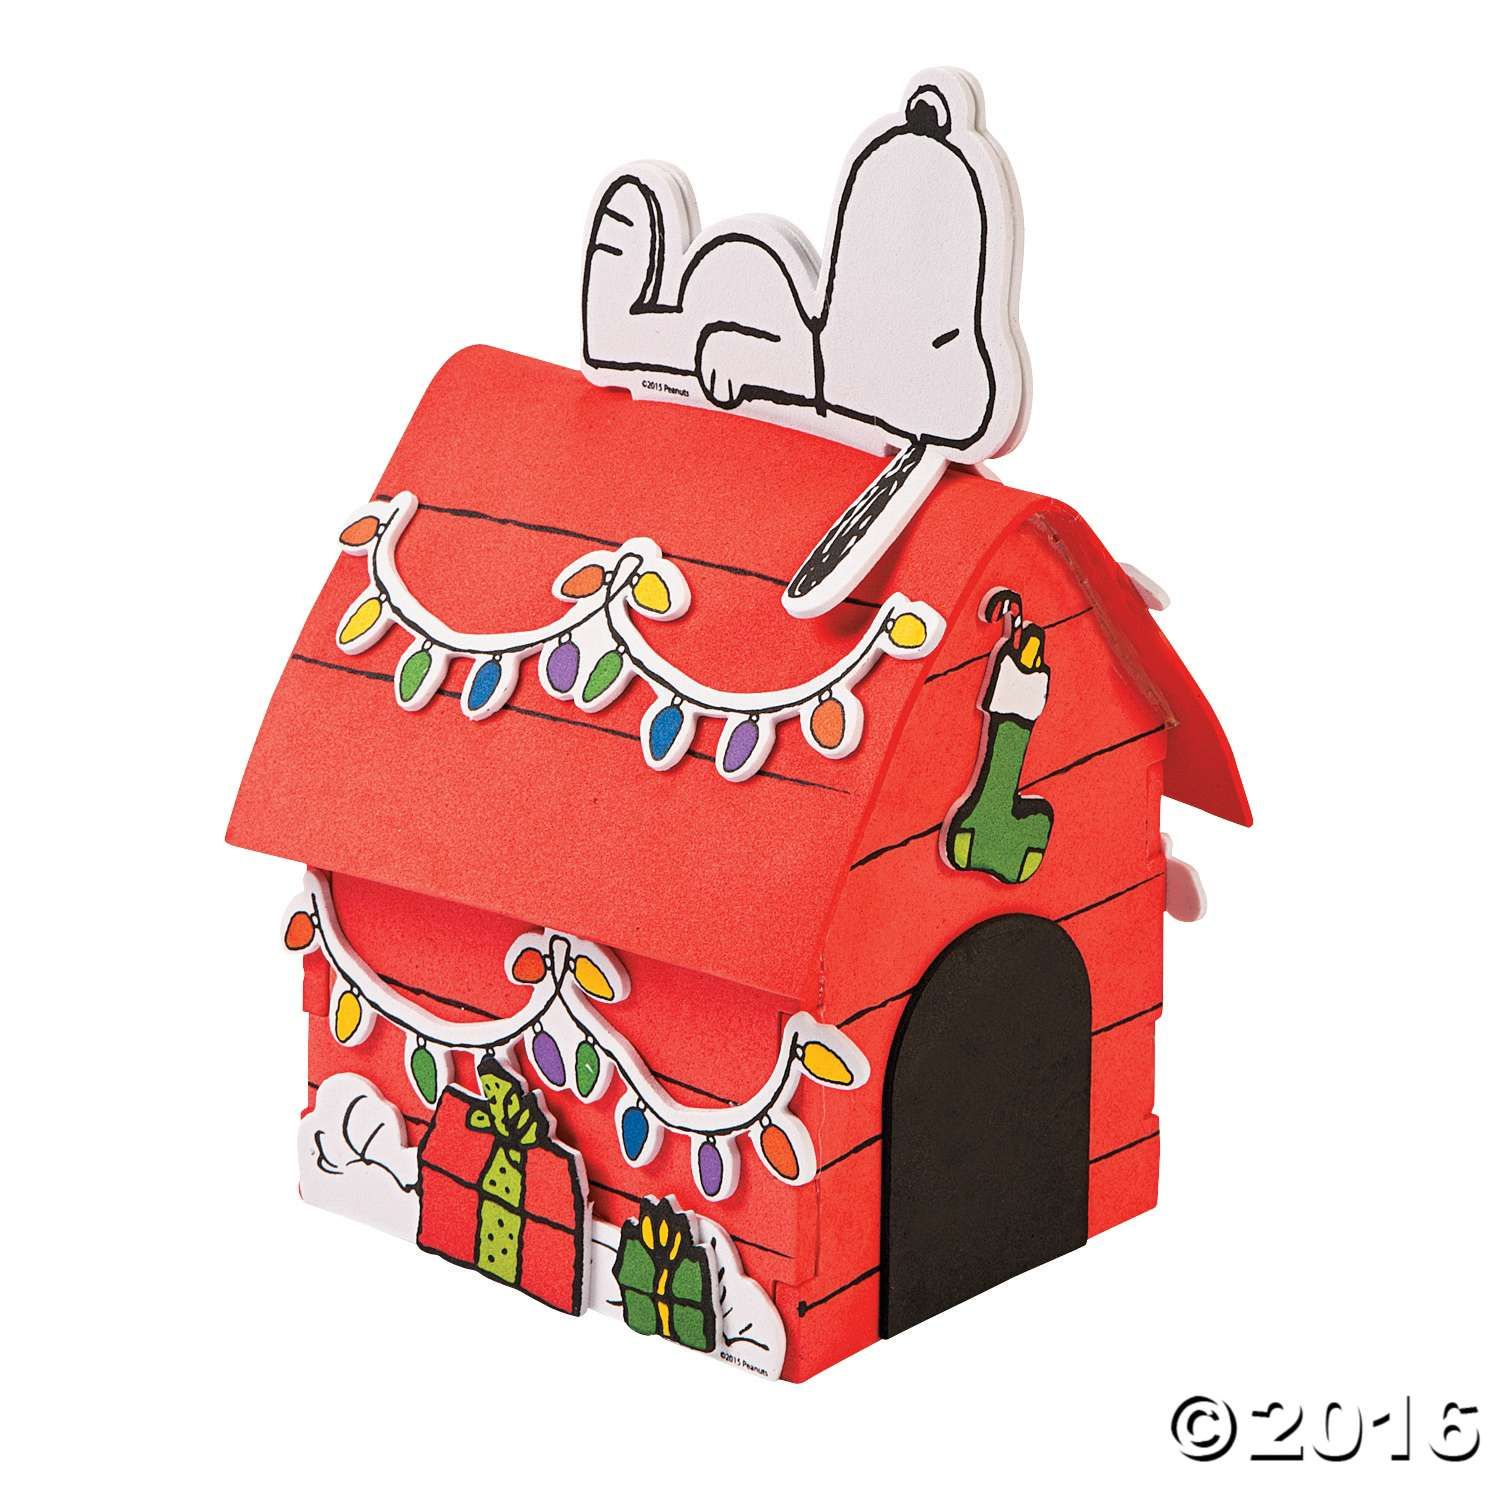 Create Your Own Dog House For Snoopy To Hang Out On With This 3d